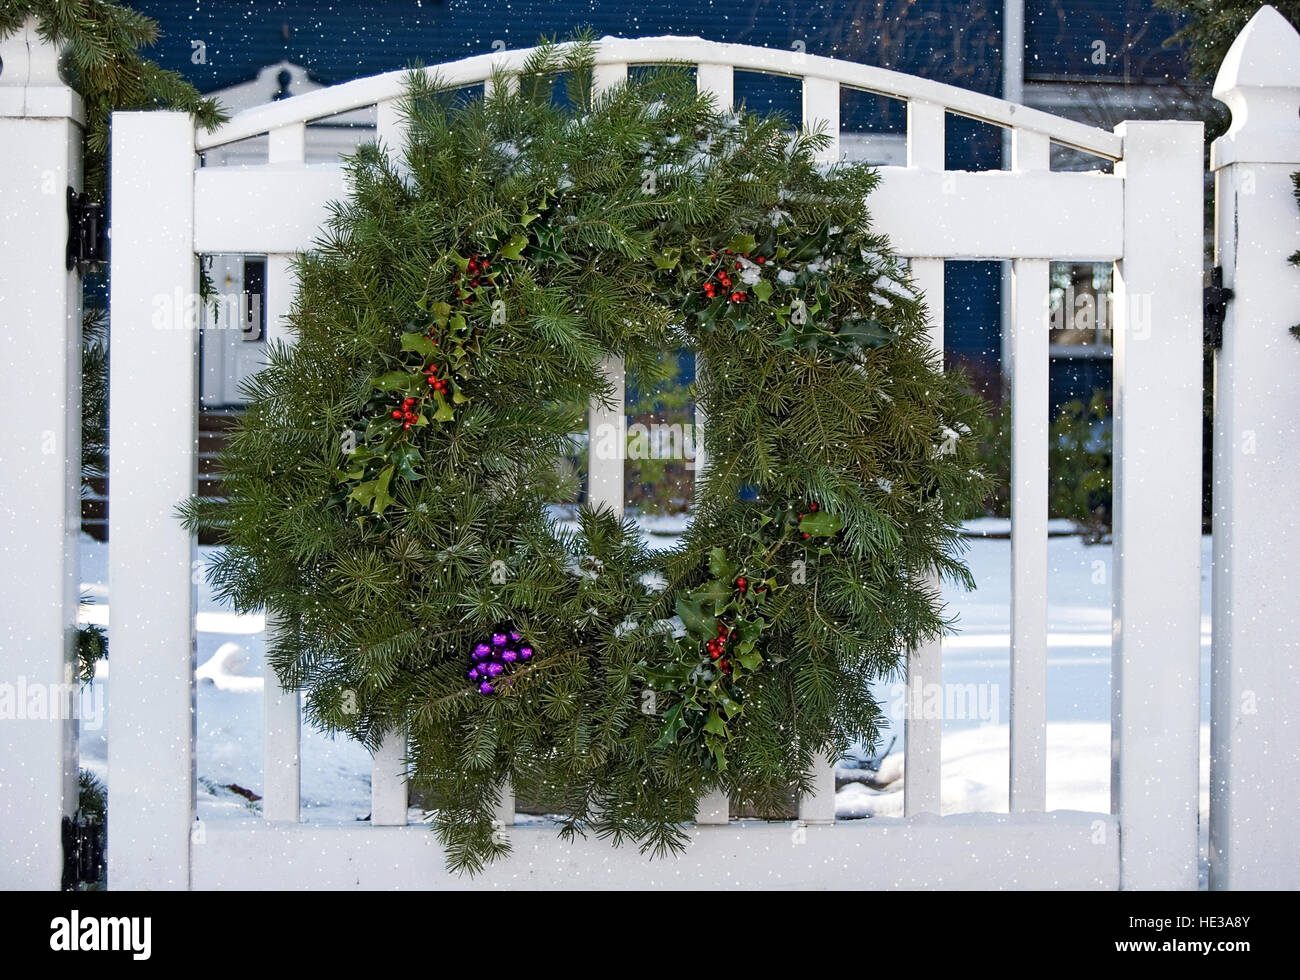 pine wreath with christmas decorations on white fence gate